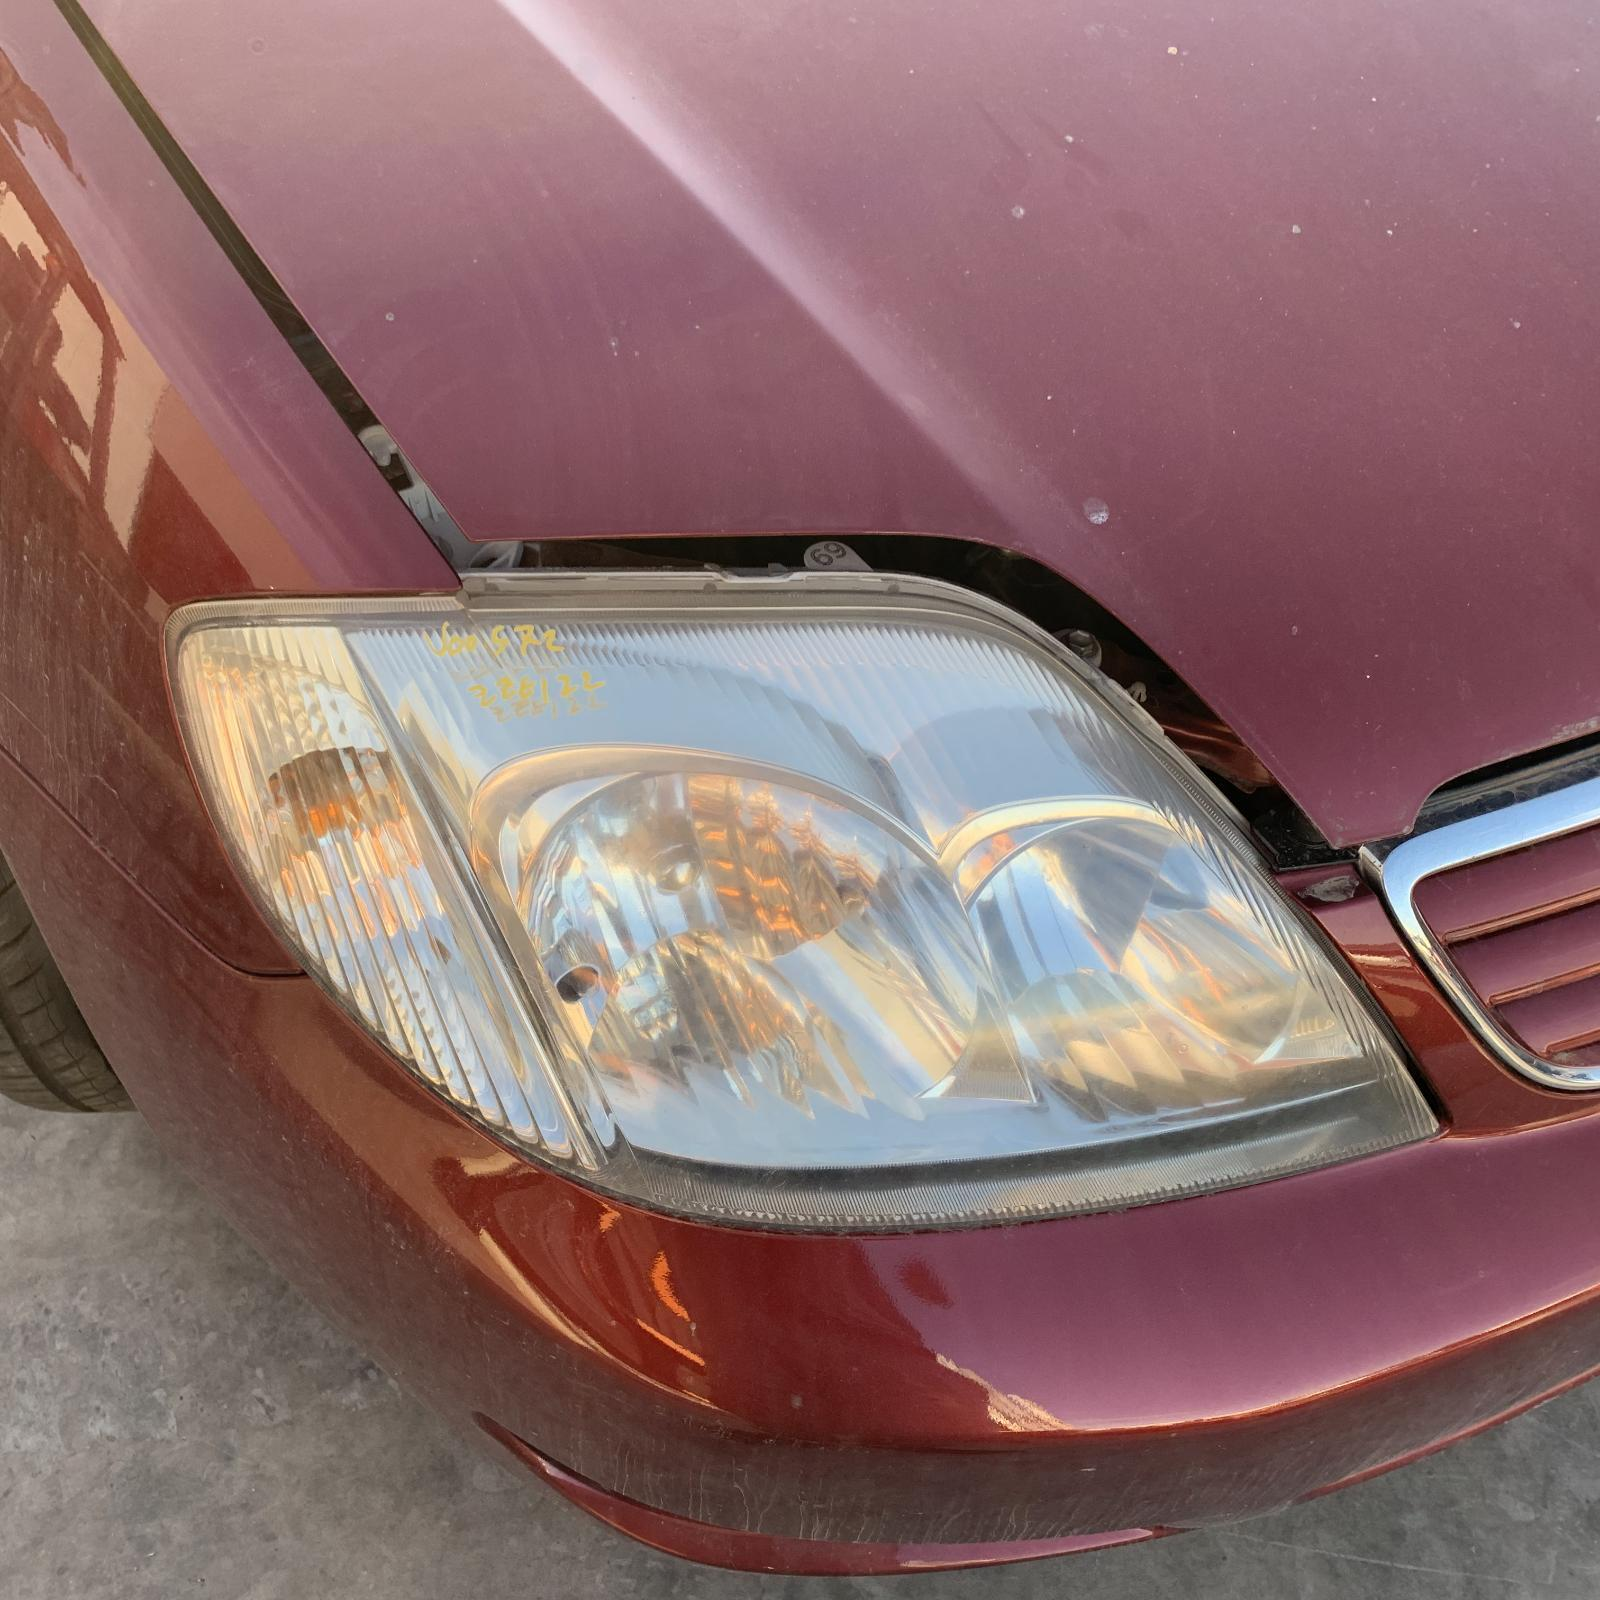 TOYOTA COROLLA, Right Headlamp, ZZE122 (JAPAN-VIN JTD), SEDAN/WAGON, 04/04-06/07